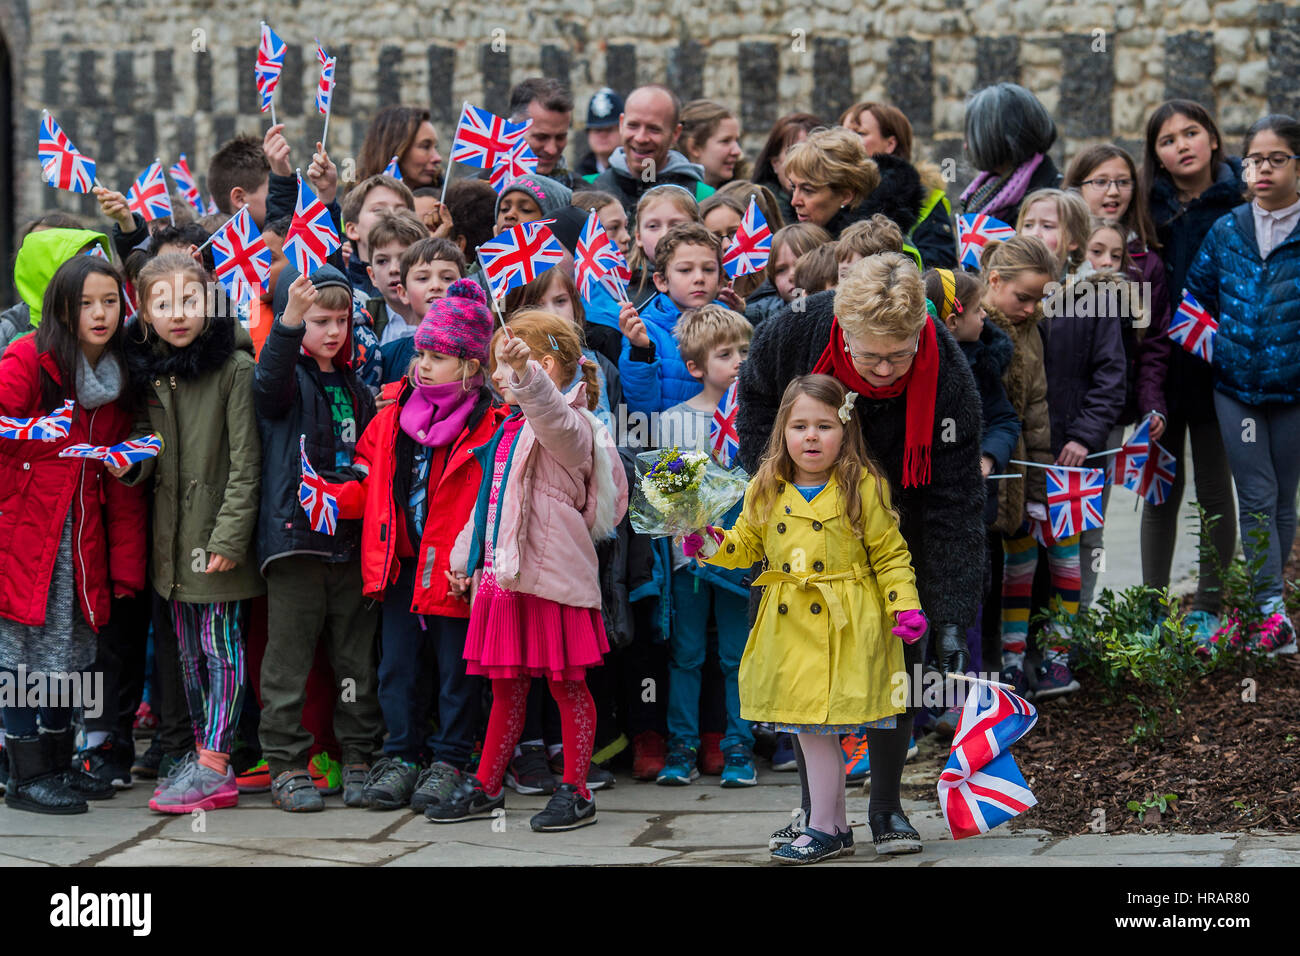 London, UK. 28th Feb, 2017. Molly (yellow coat, aged three) waits to give the Queen some flowers - The Queen, accompanied - Stock Image